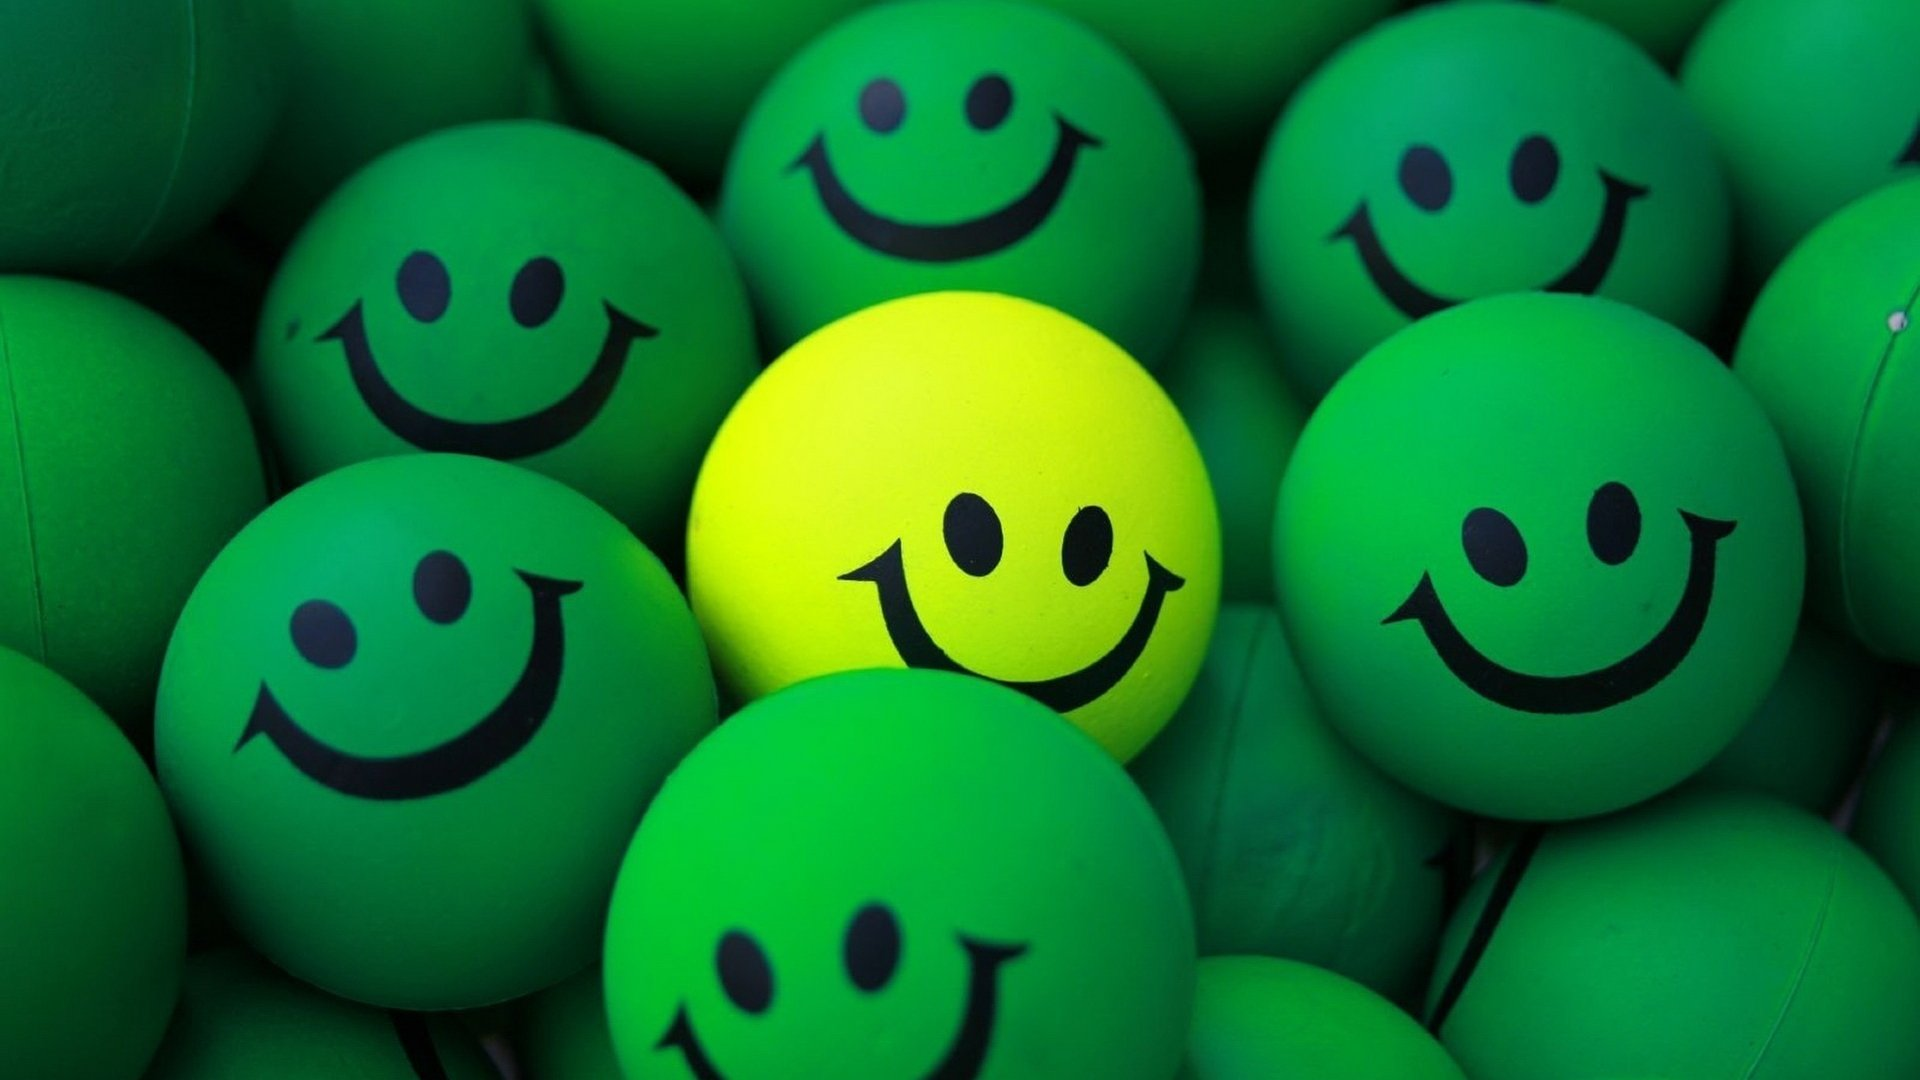 Balls green yellow smiles happy wallpaper | 1920x1080 | 438104 | WallpaperUP